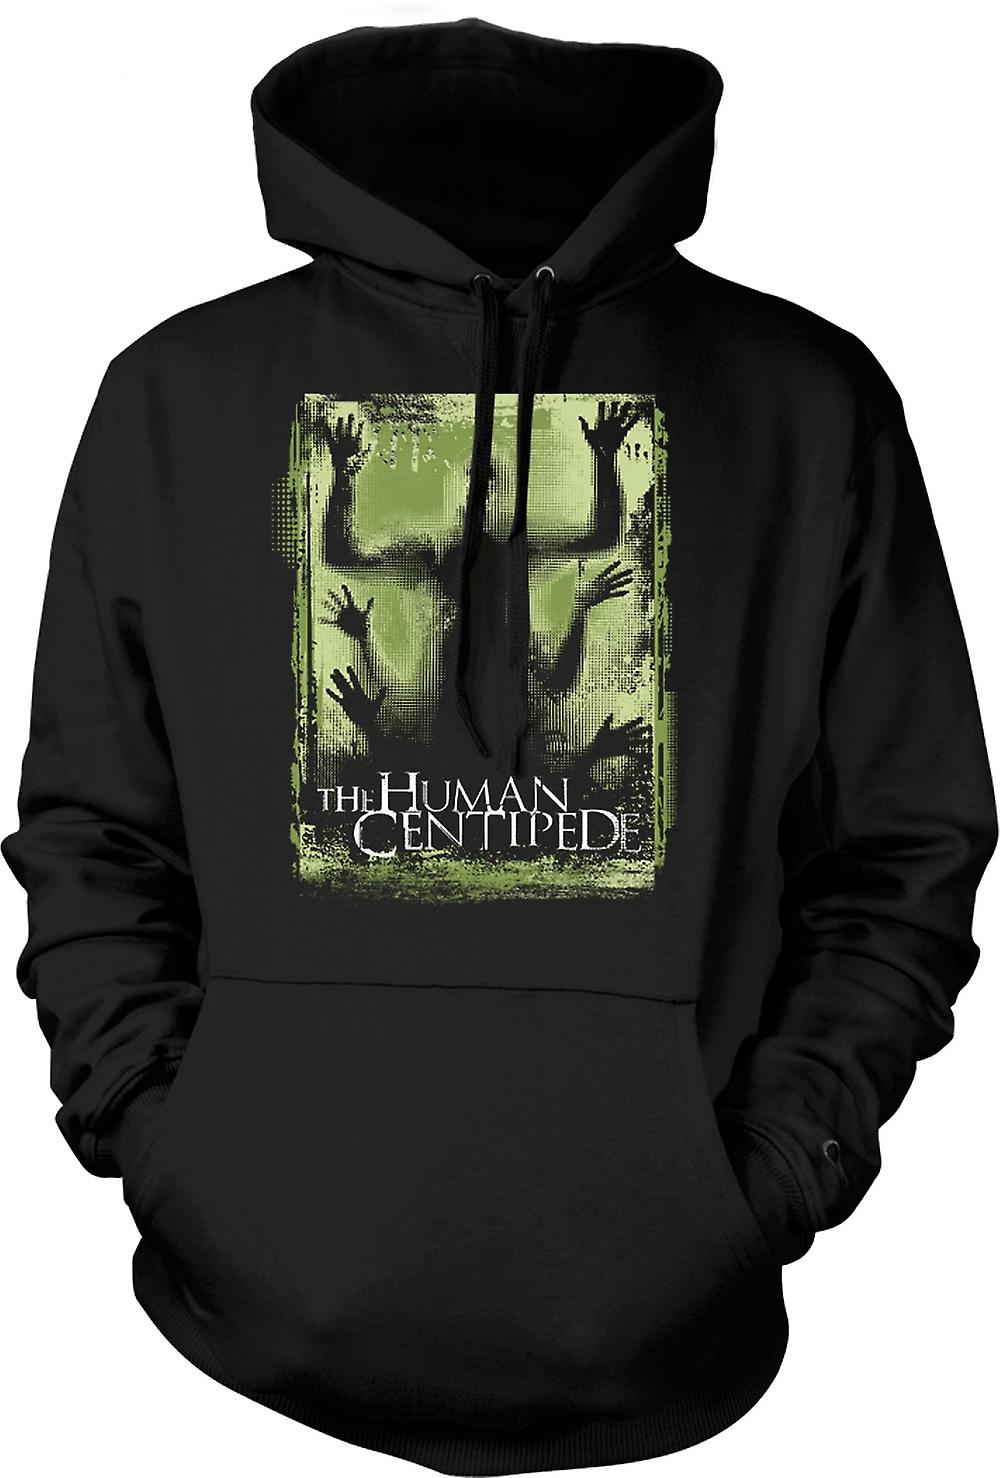 Kids Hoodie - The Human Centipede - Movie